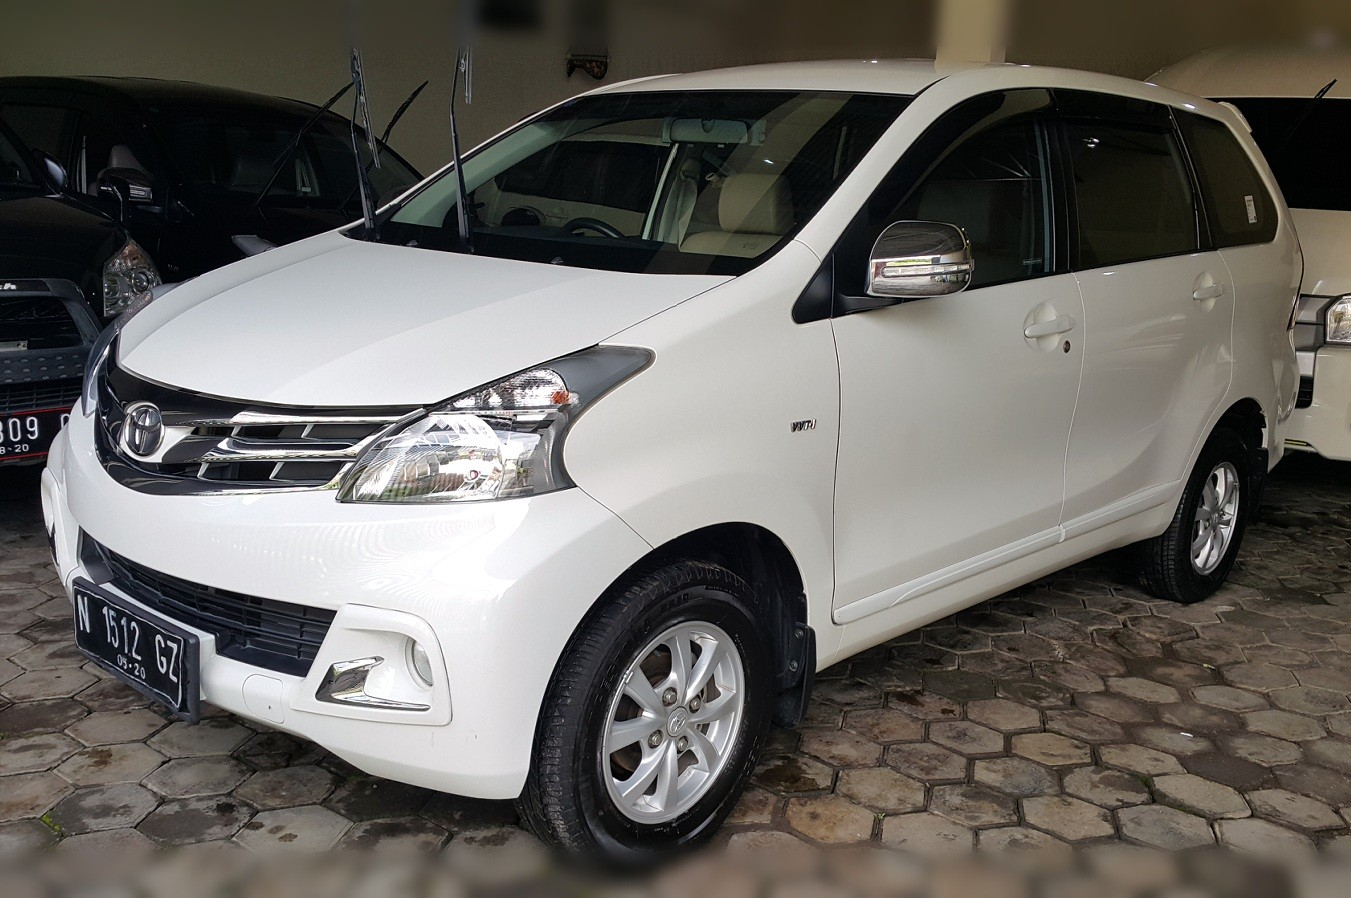 harga grand new avanza di makassar review 2015 in malang